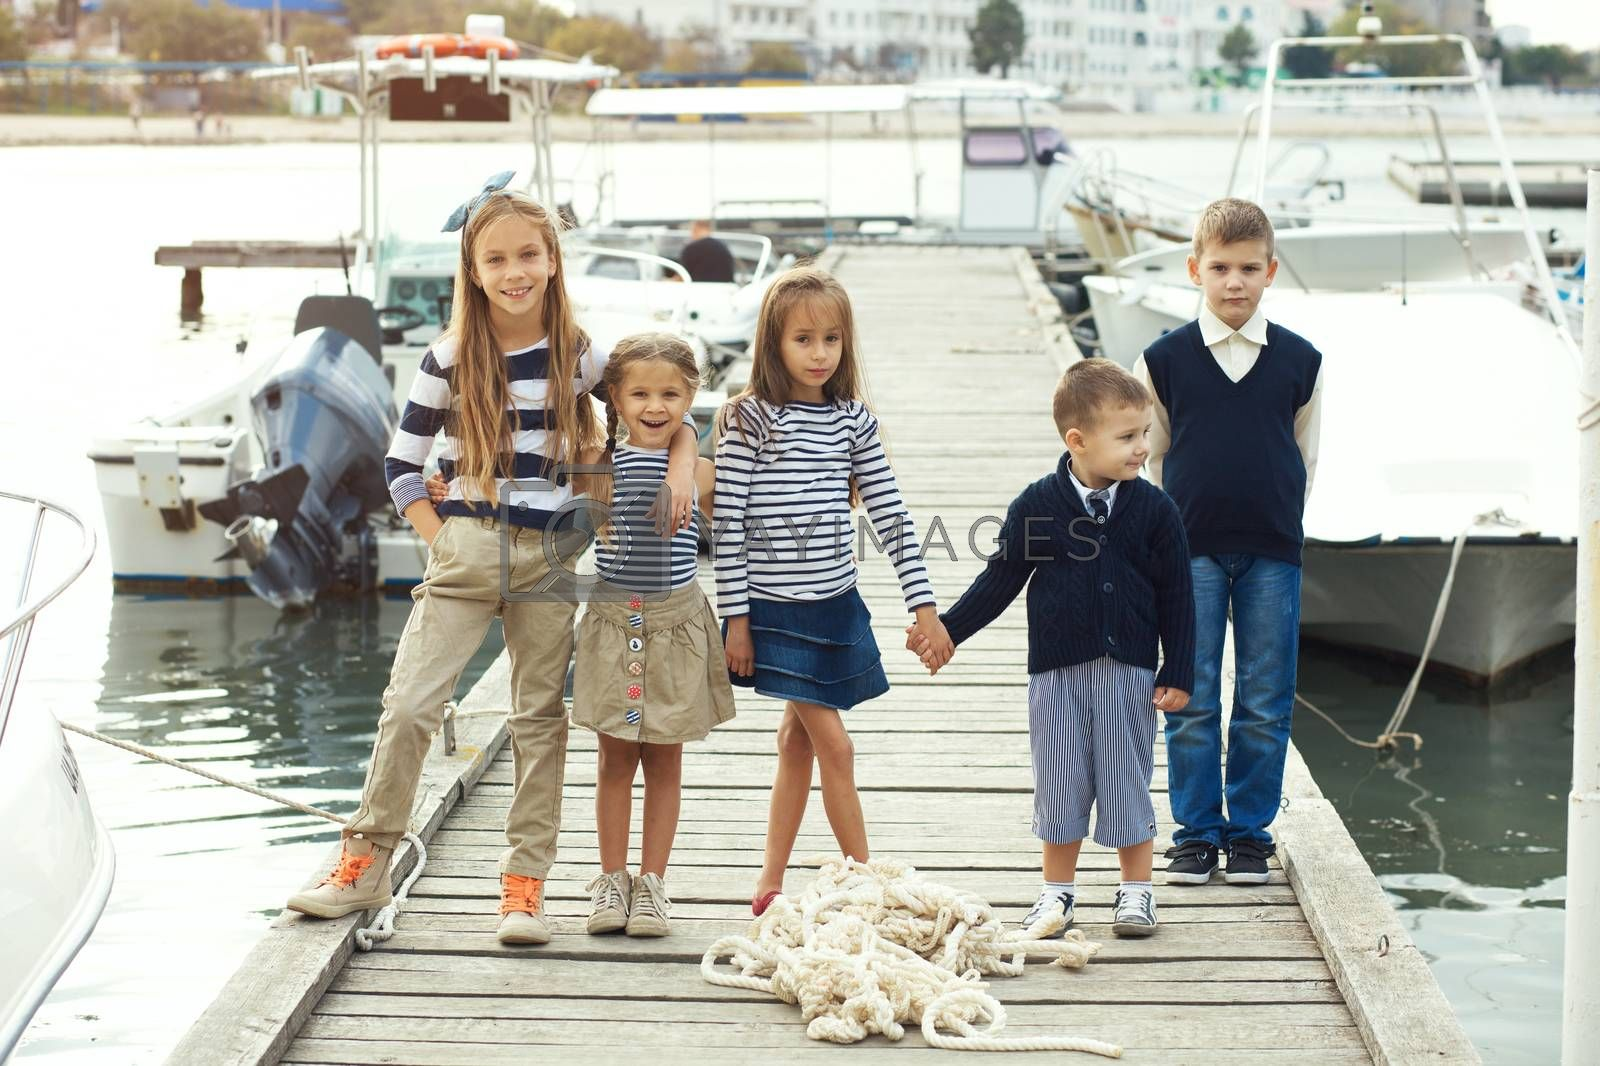 Many fashion kids wearing navy clothes in marine style walking in the sea port and holding hands